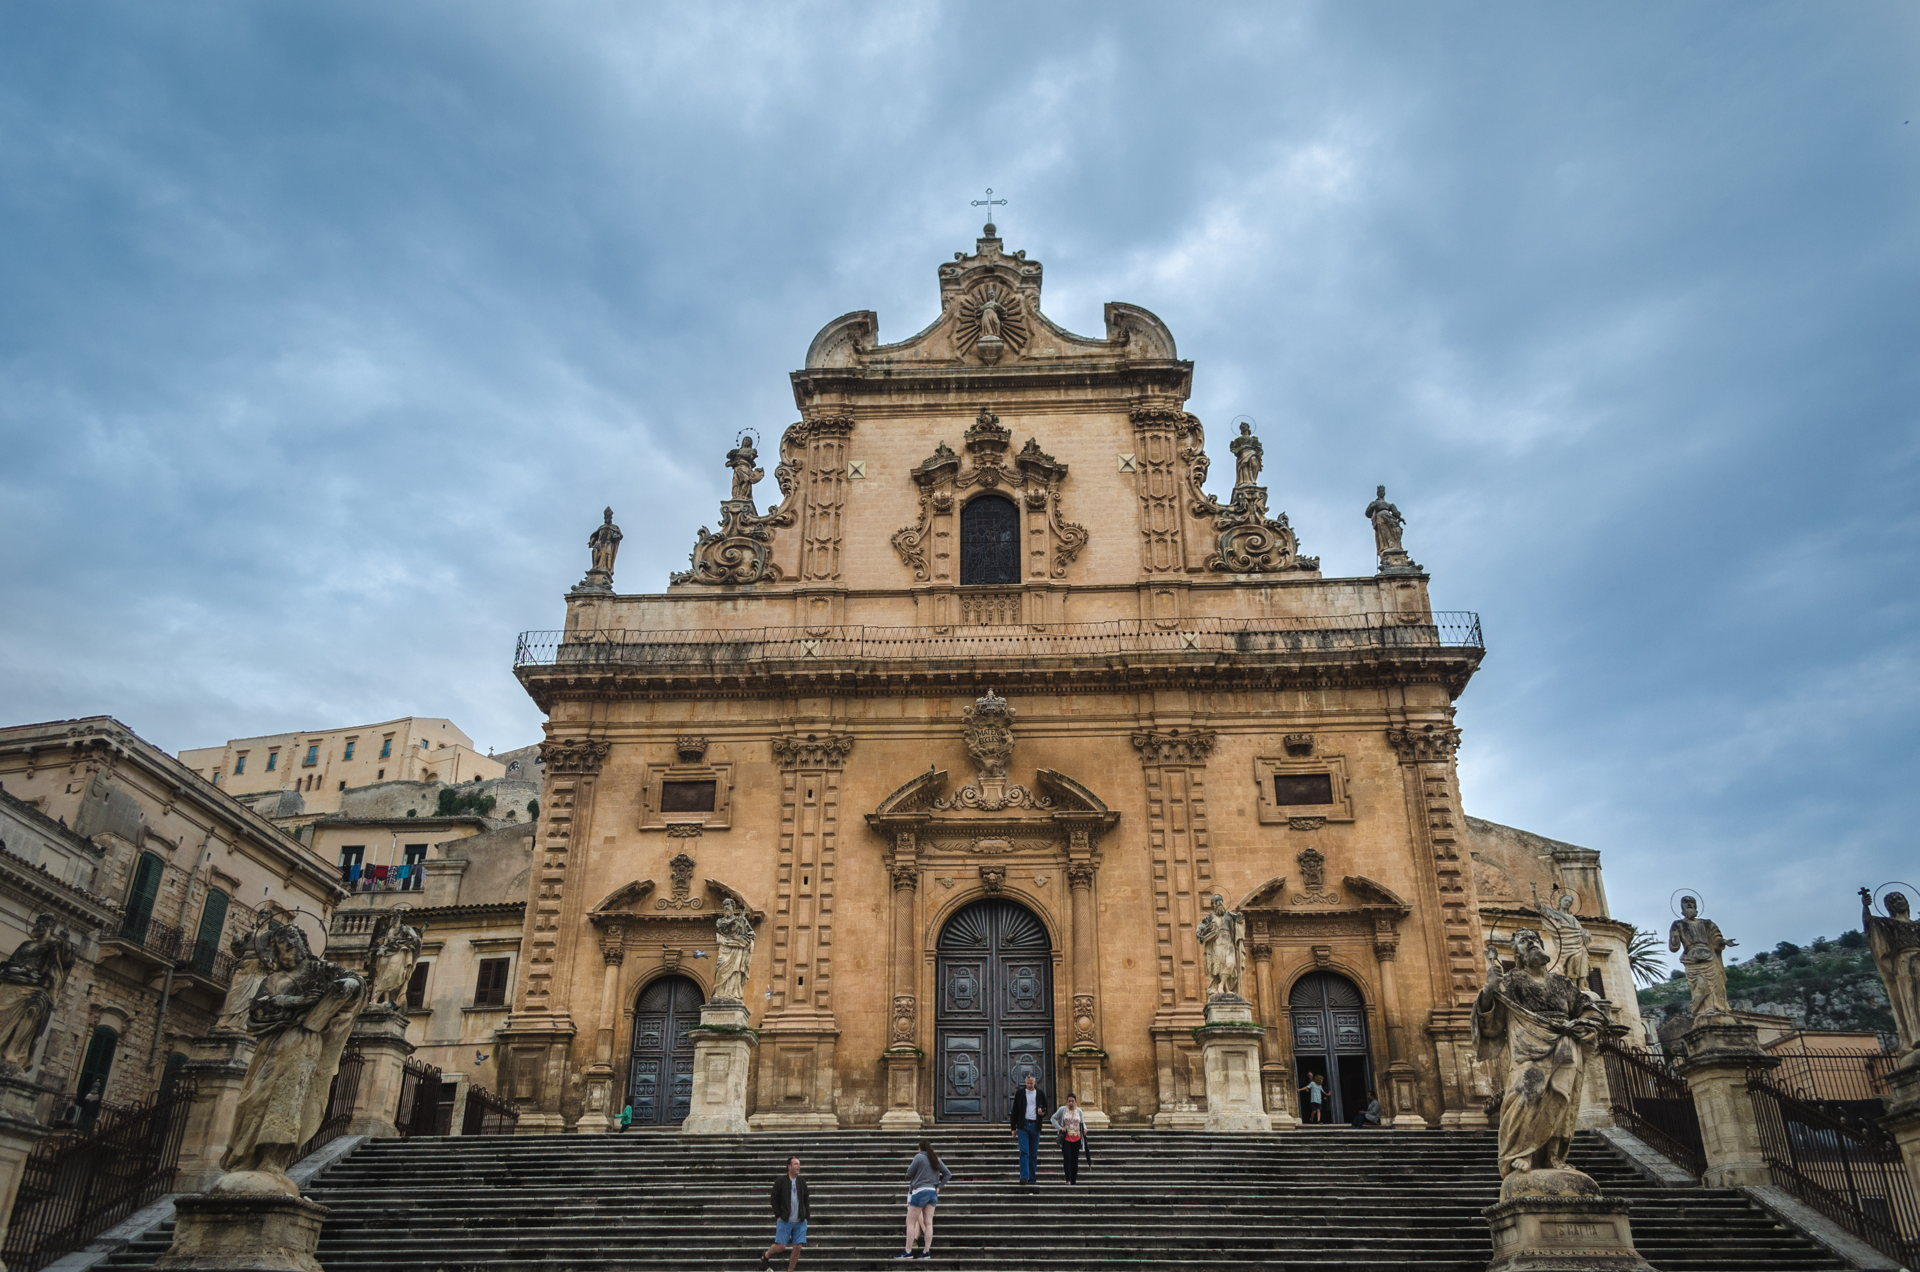 modica, modica church, modica travel, modica sicily, modica backpacking, travel to modica, best places to visit in sicily